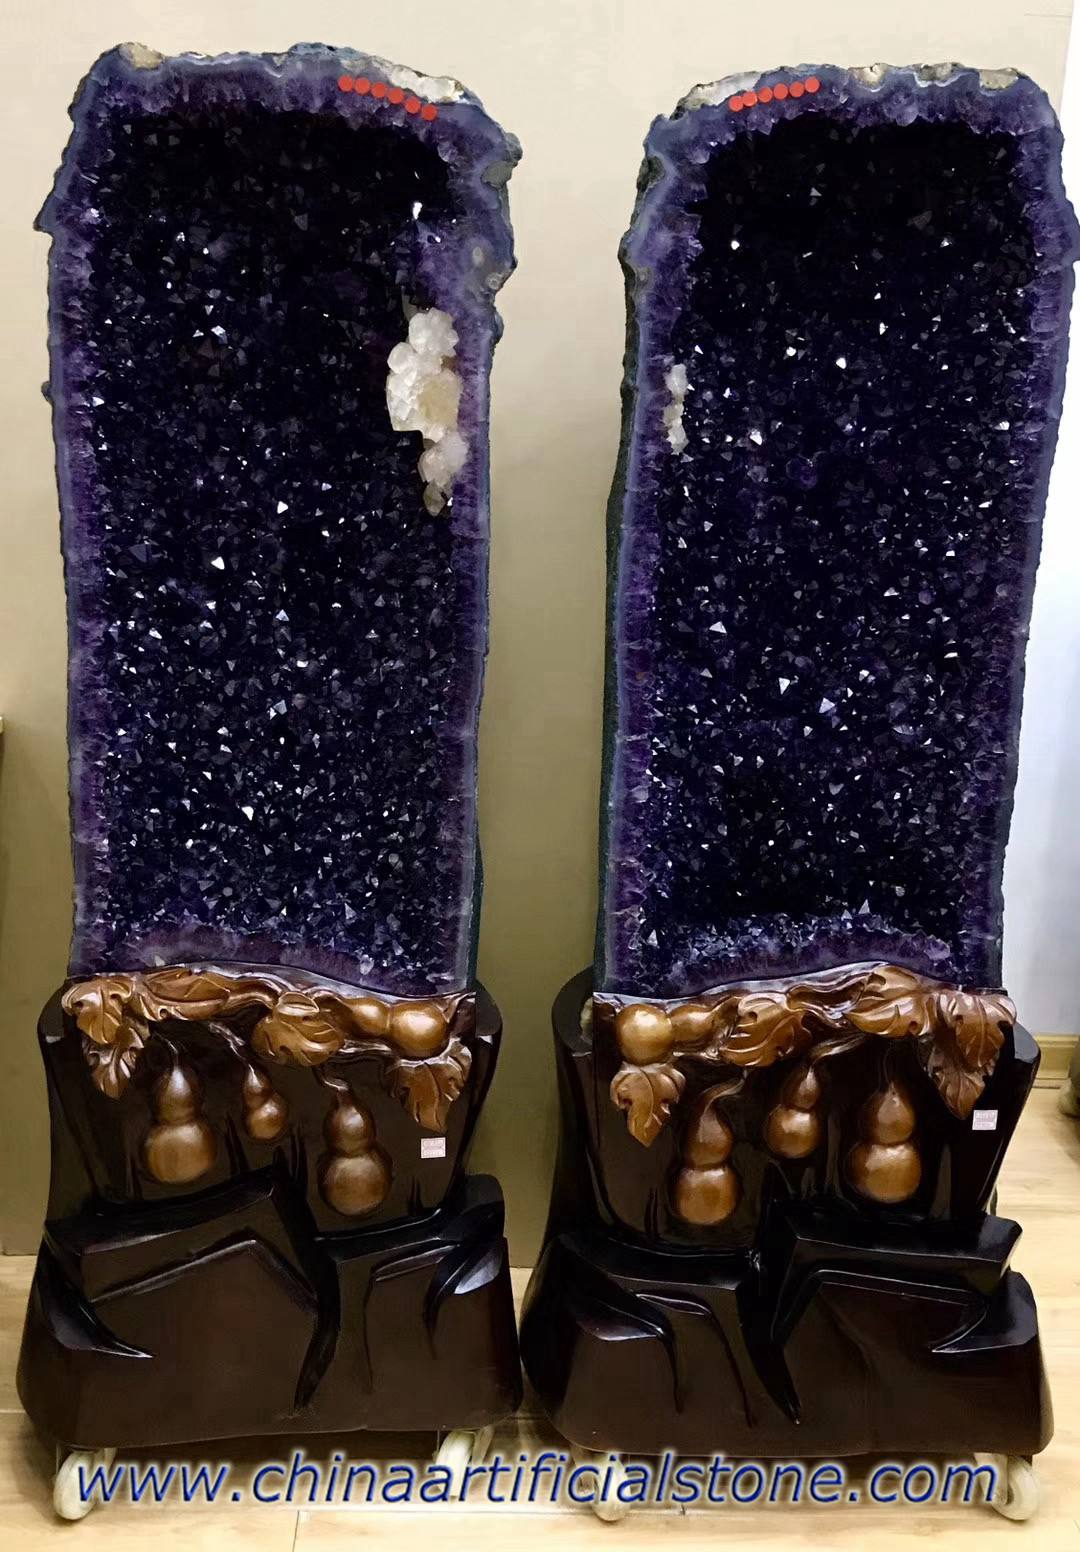 Large Amethyst Geodes Home Decoration